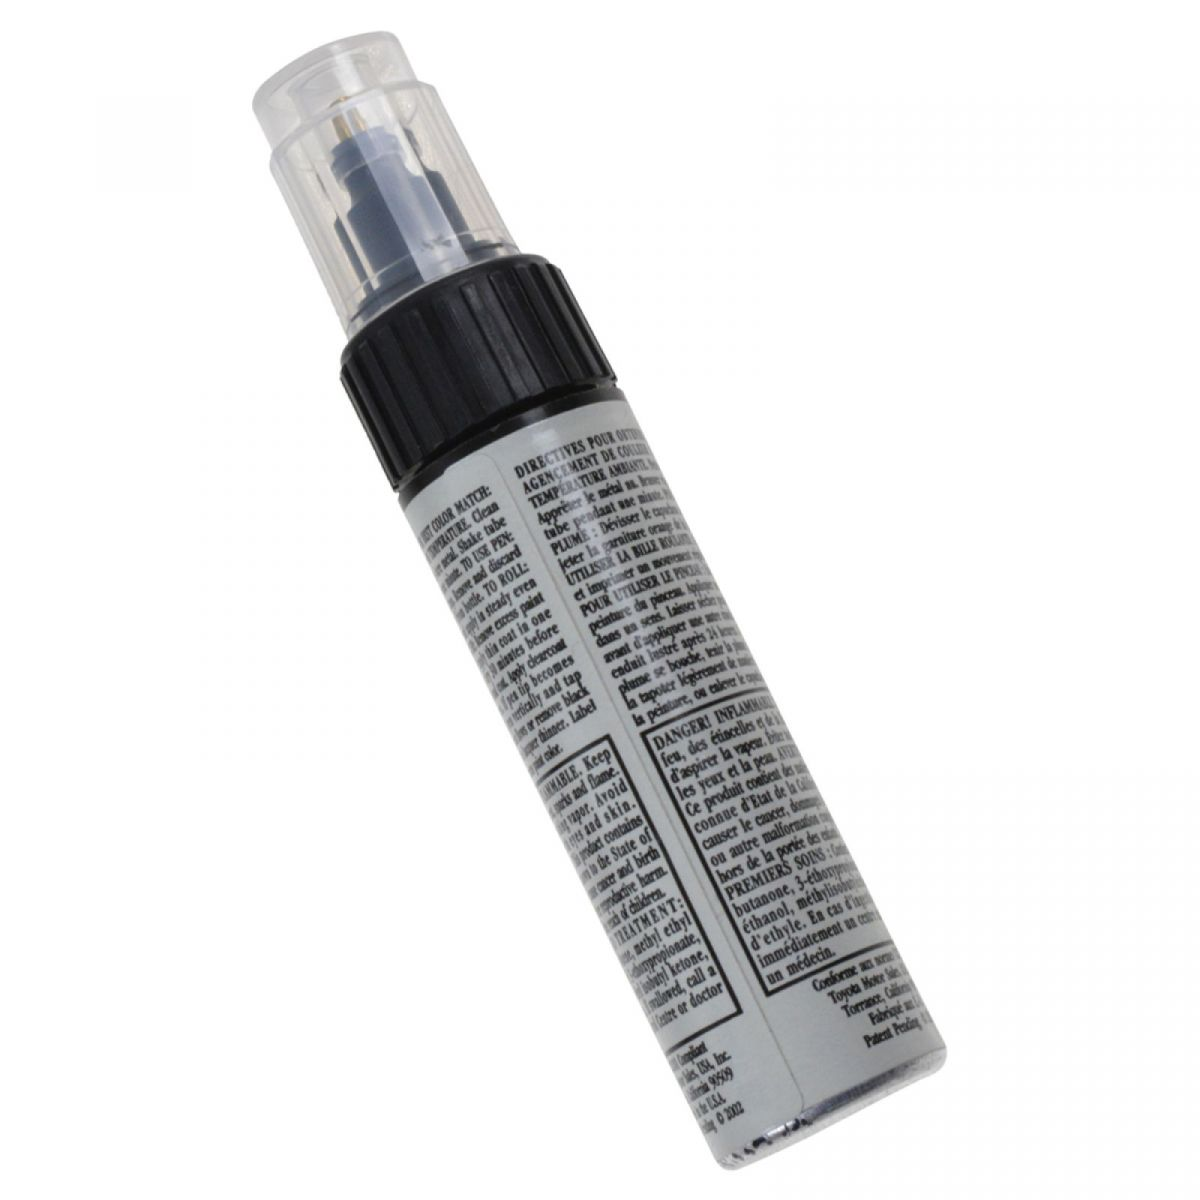 Oem touch up paint pen brush blizzard pearl 070 paint code for Toyota paint touch up pen